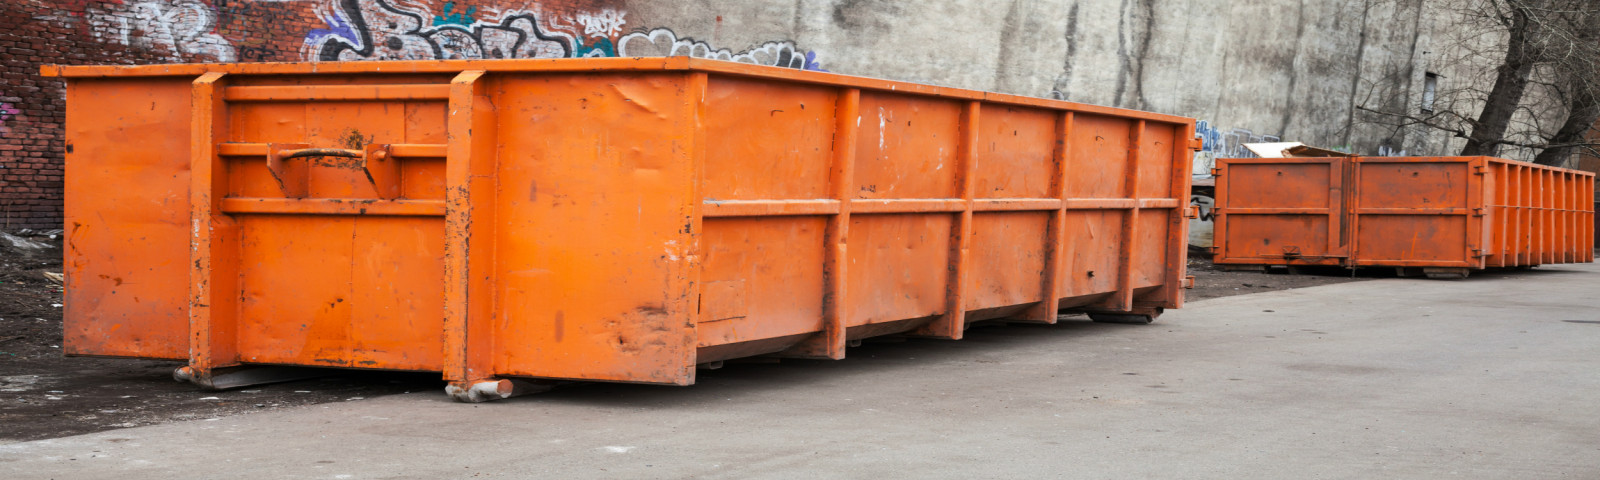 2-orange-commercial-skips-e1453849108123